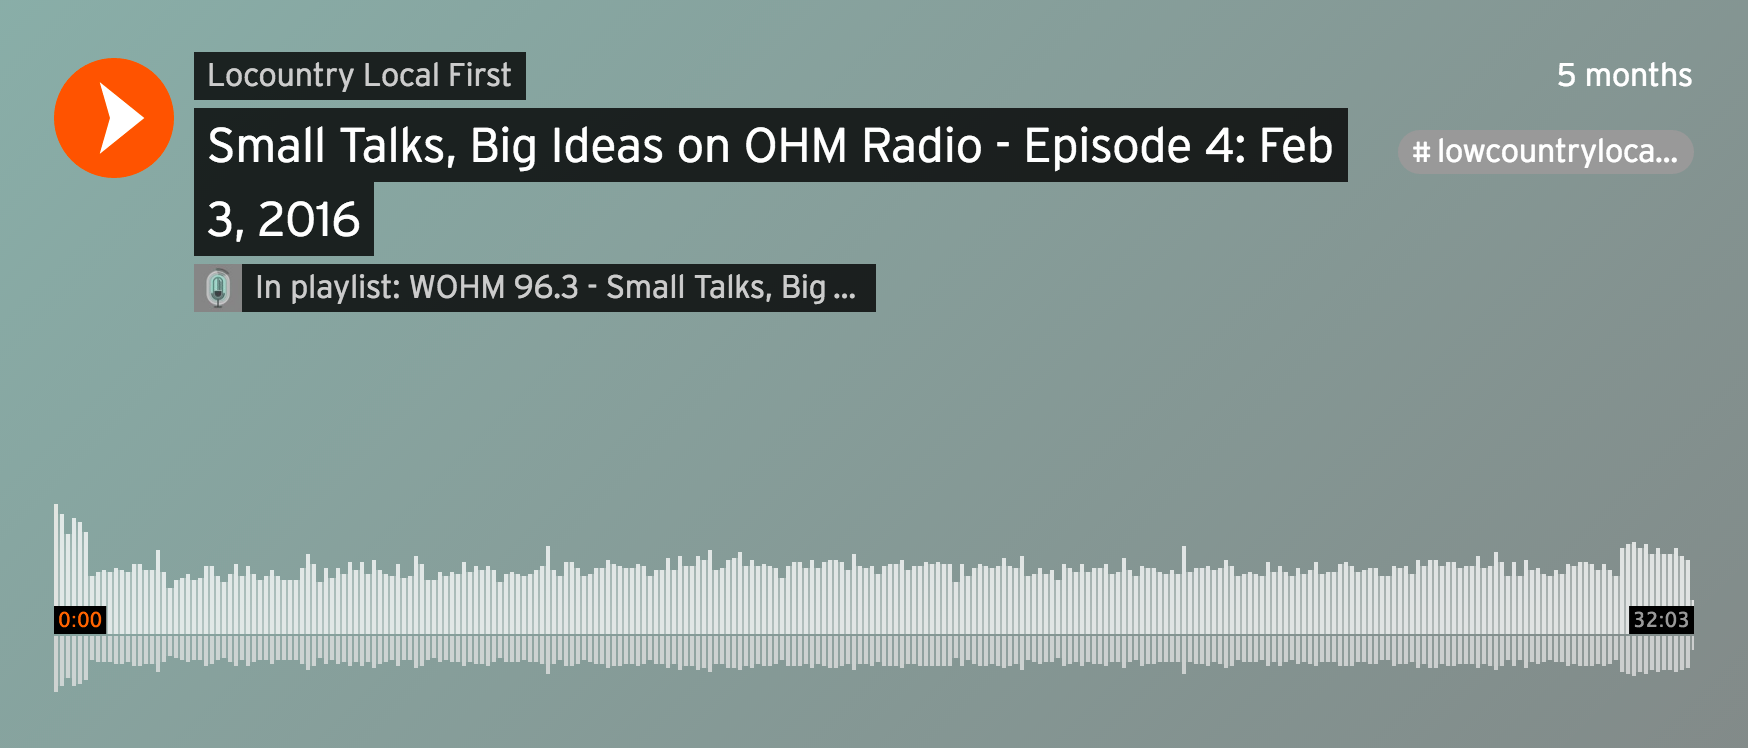 Small Talks, Big Ideas on OHM Radio